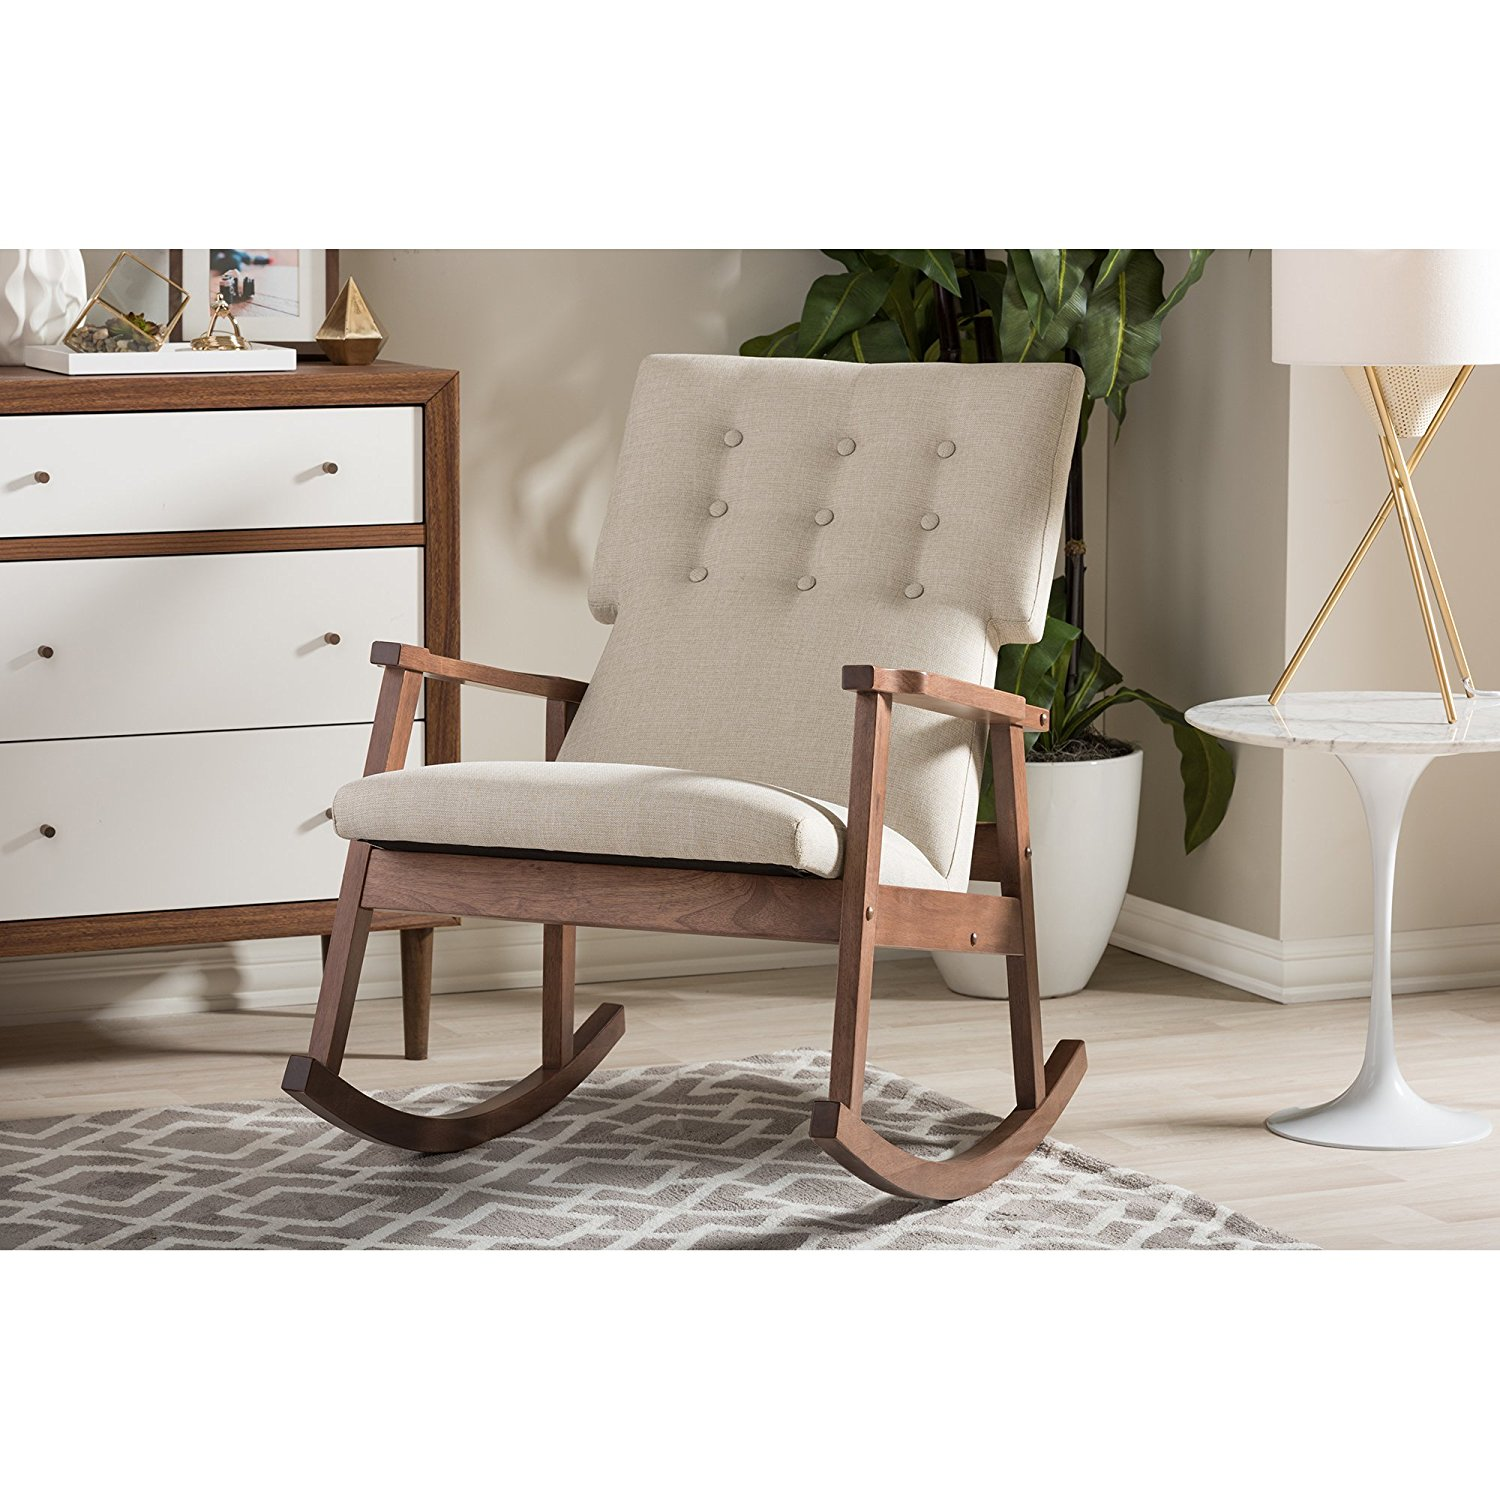 Terrific Comfy And Lovely Rocking Chair Plans Royals Courage Alphanode Cool Chair Designs And Ideas Alphanodeonline